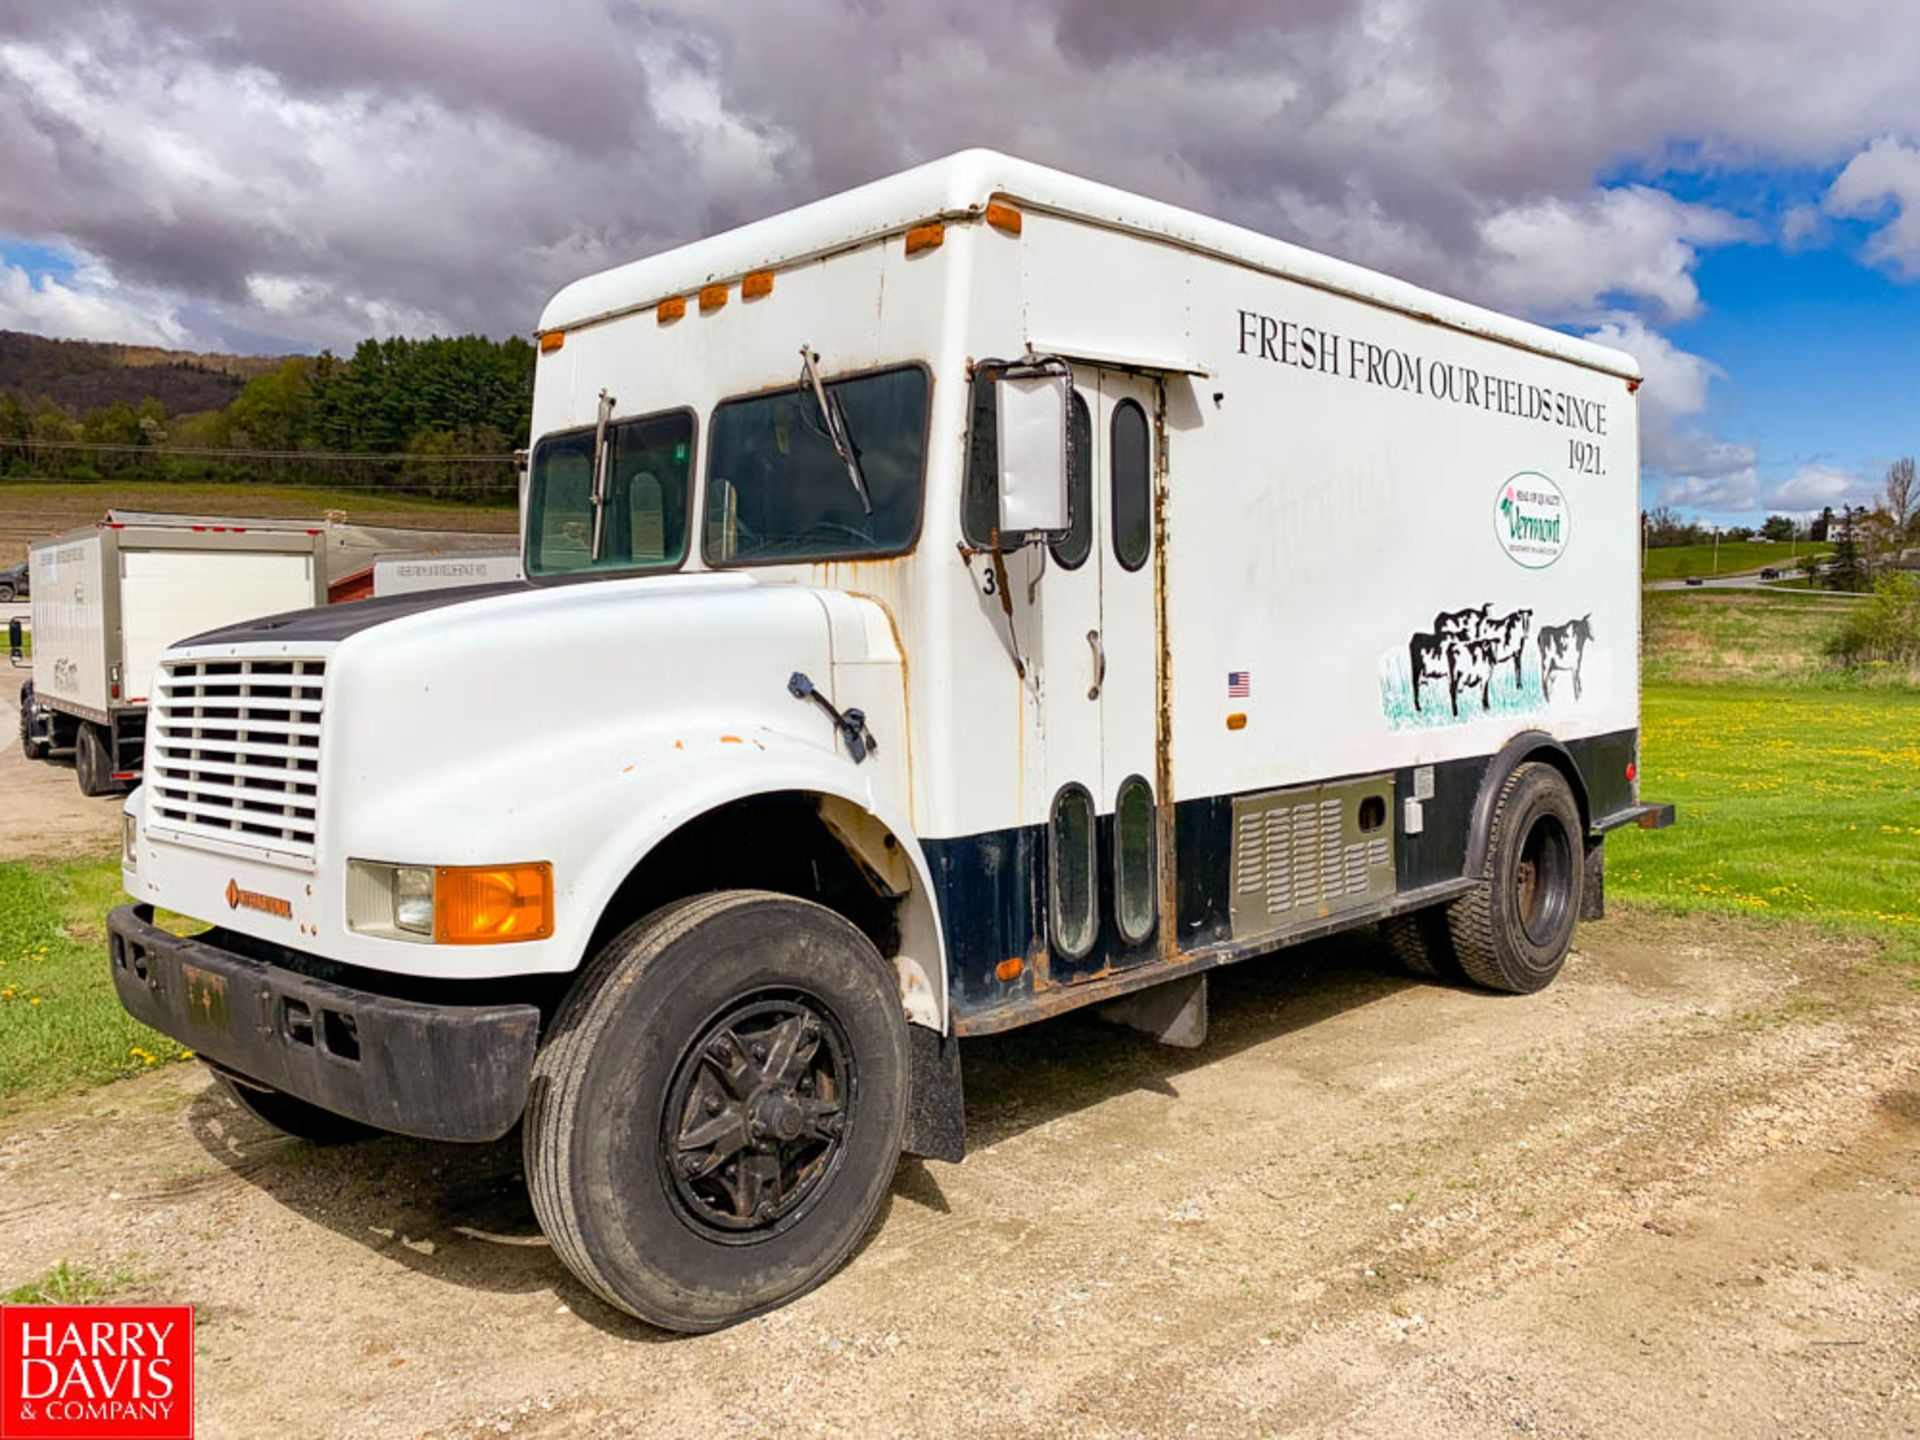 1992 International 12' Refrigerated Retail Delivery Truck Model: 3800,26,000 GVWR, DT360 Diesel,